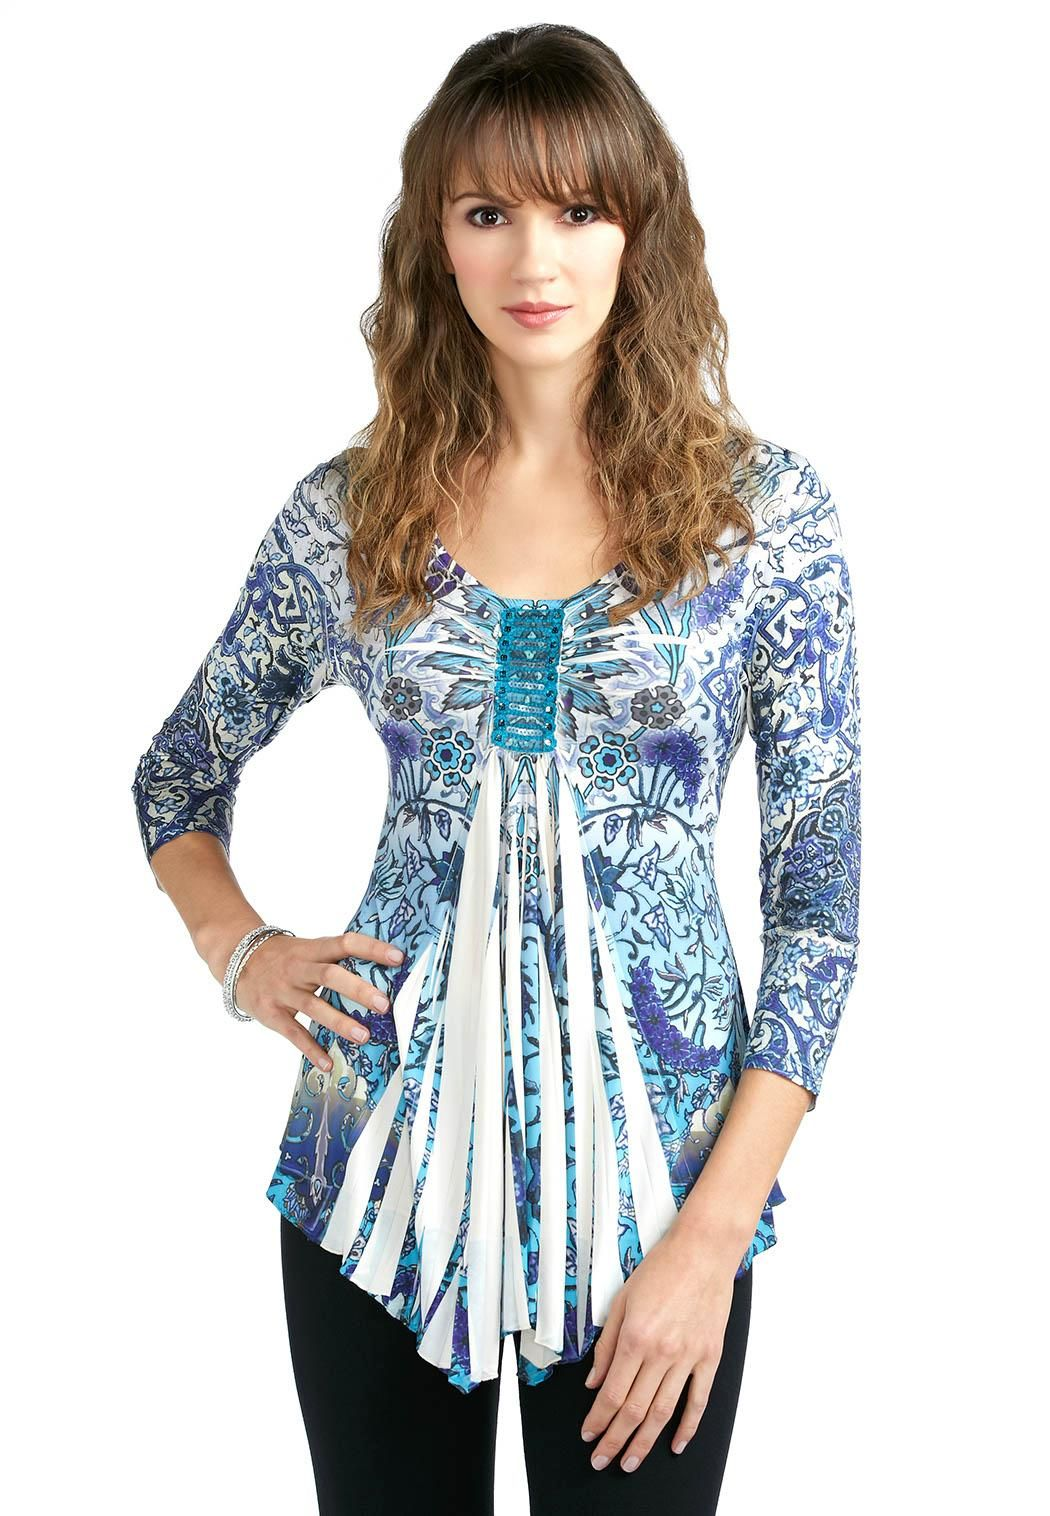 3b243f4e Sequin Sublimation Top Tees & Knit Tops Cato Fashions | Style ...